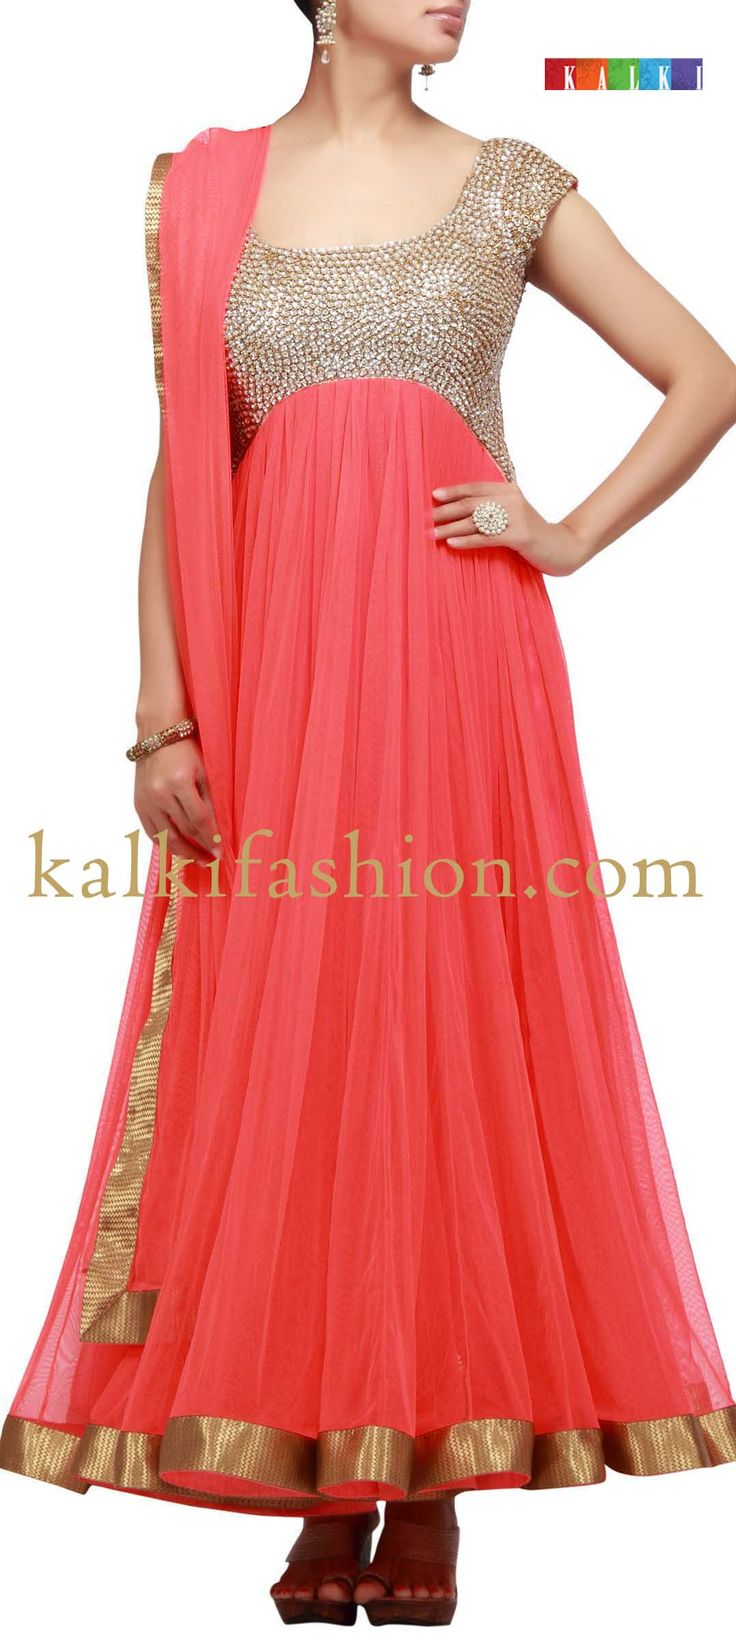 Buy it now  http://www.kalkifashion.com/orange-suit-with-sequenced-yoke.html  Orange suit with sequenced yoke